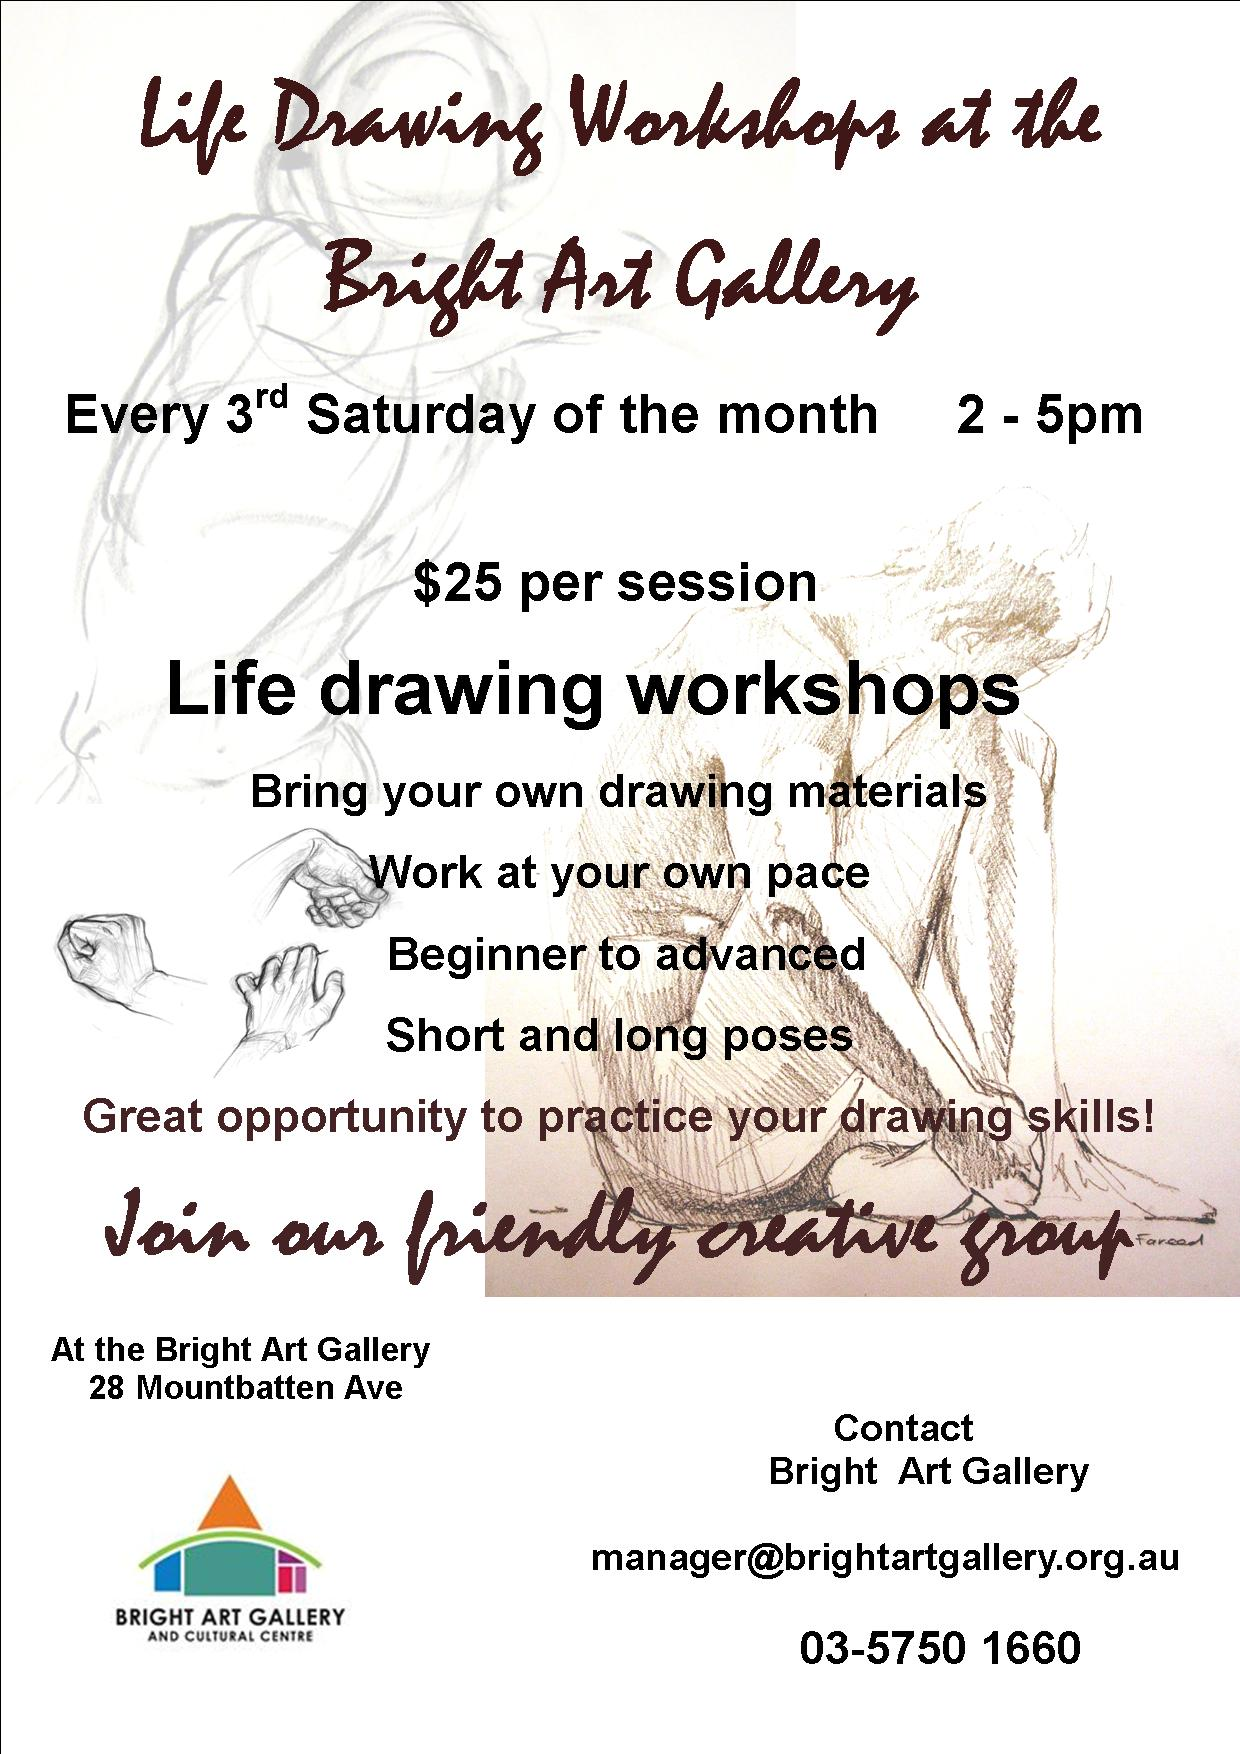 Life Drawing Workshops